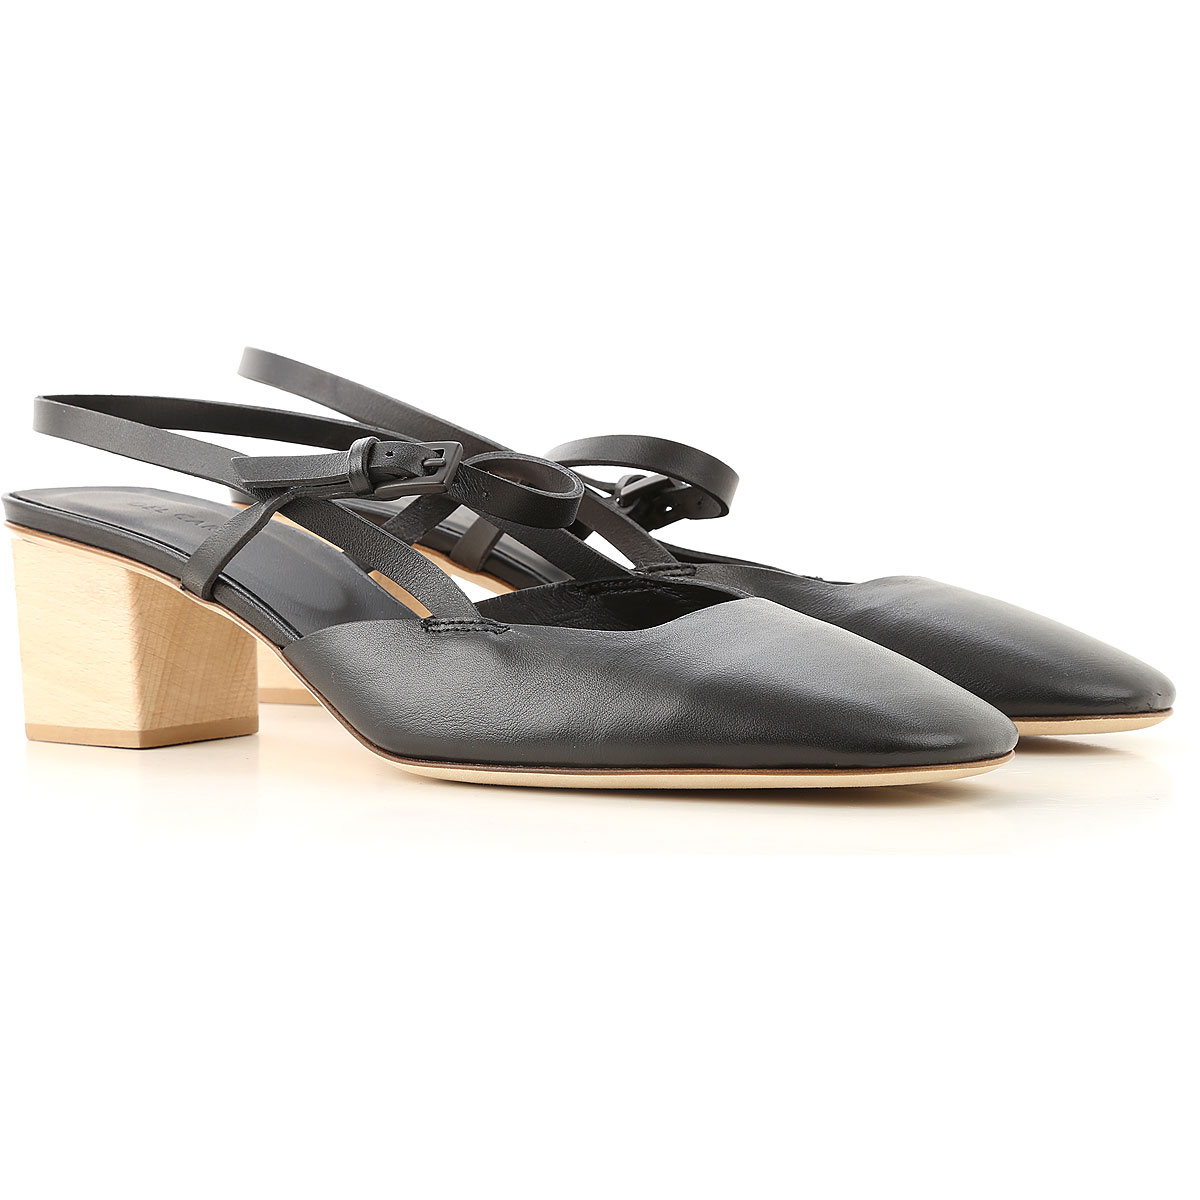 Roberto Del Carlo Sandals Heeled Womens On Sale, Black, Leather, 2019, 10 8 8.5